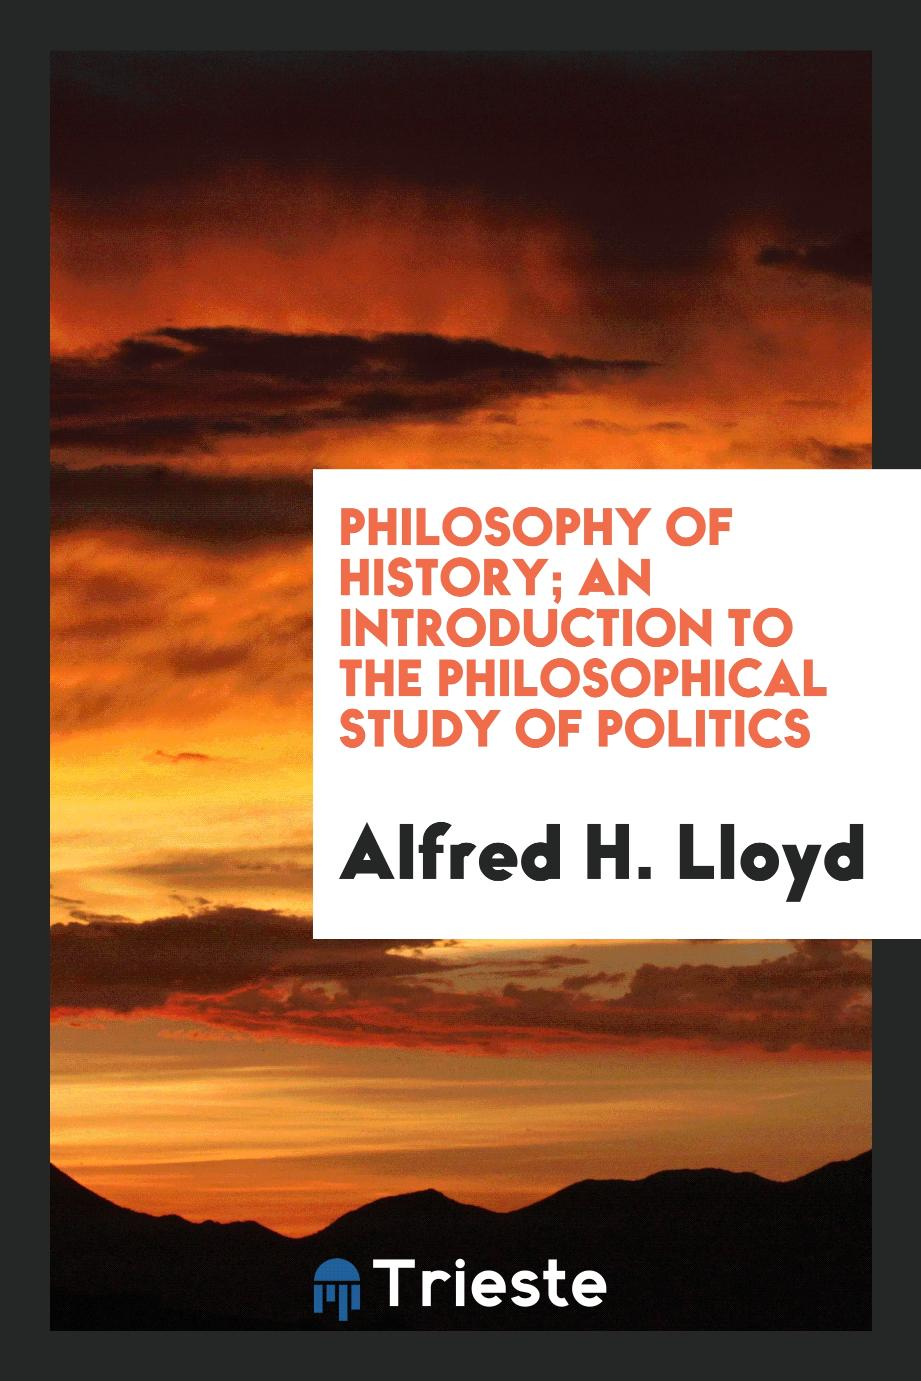 Philosophy of history; an introduction to the philosophical study of politics